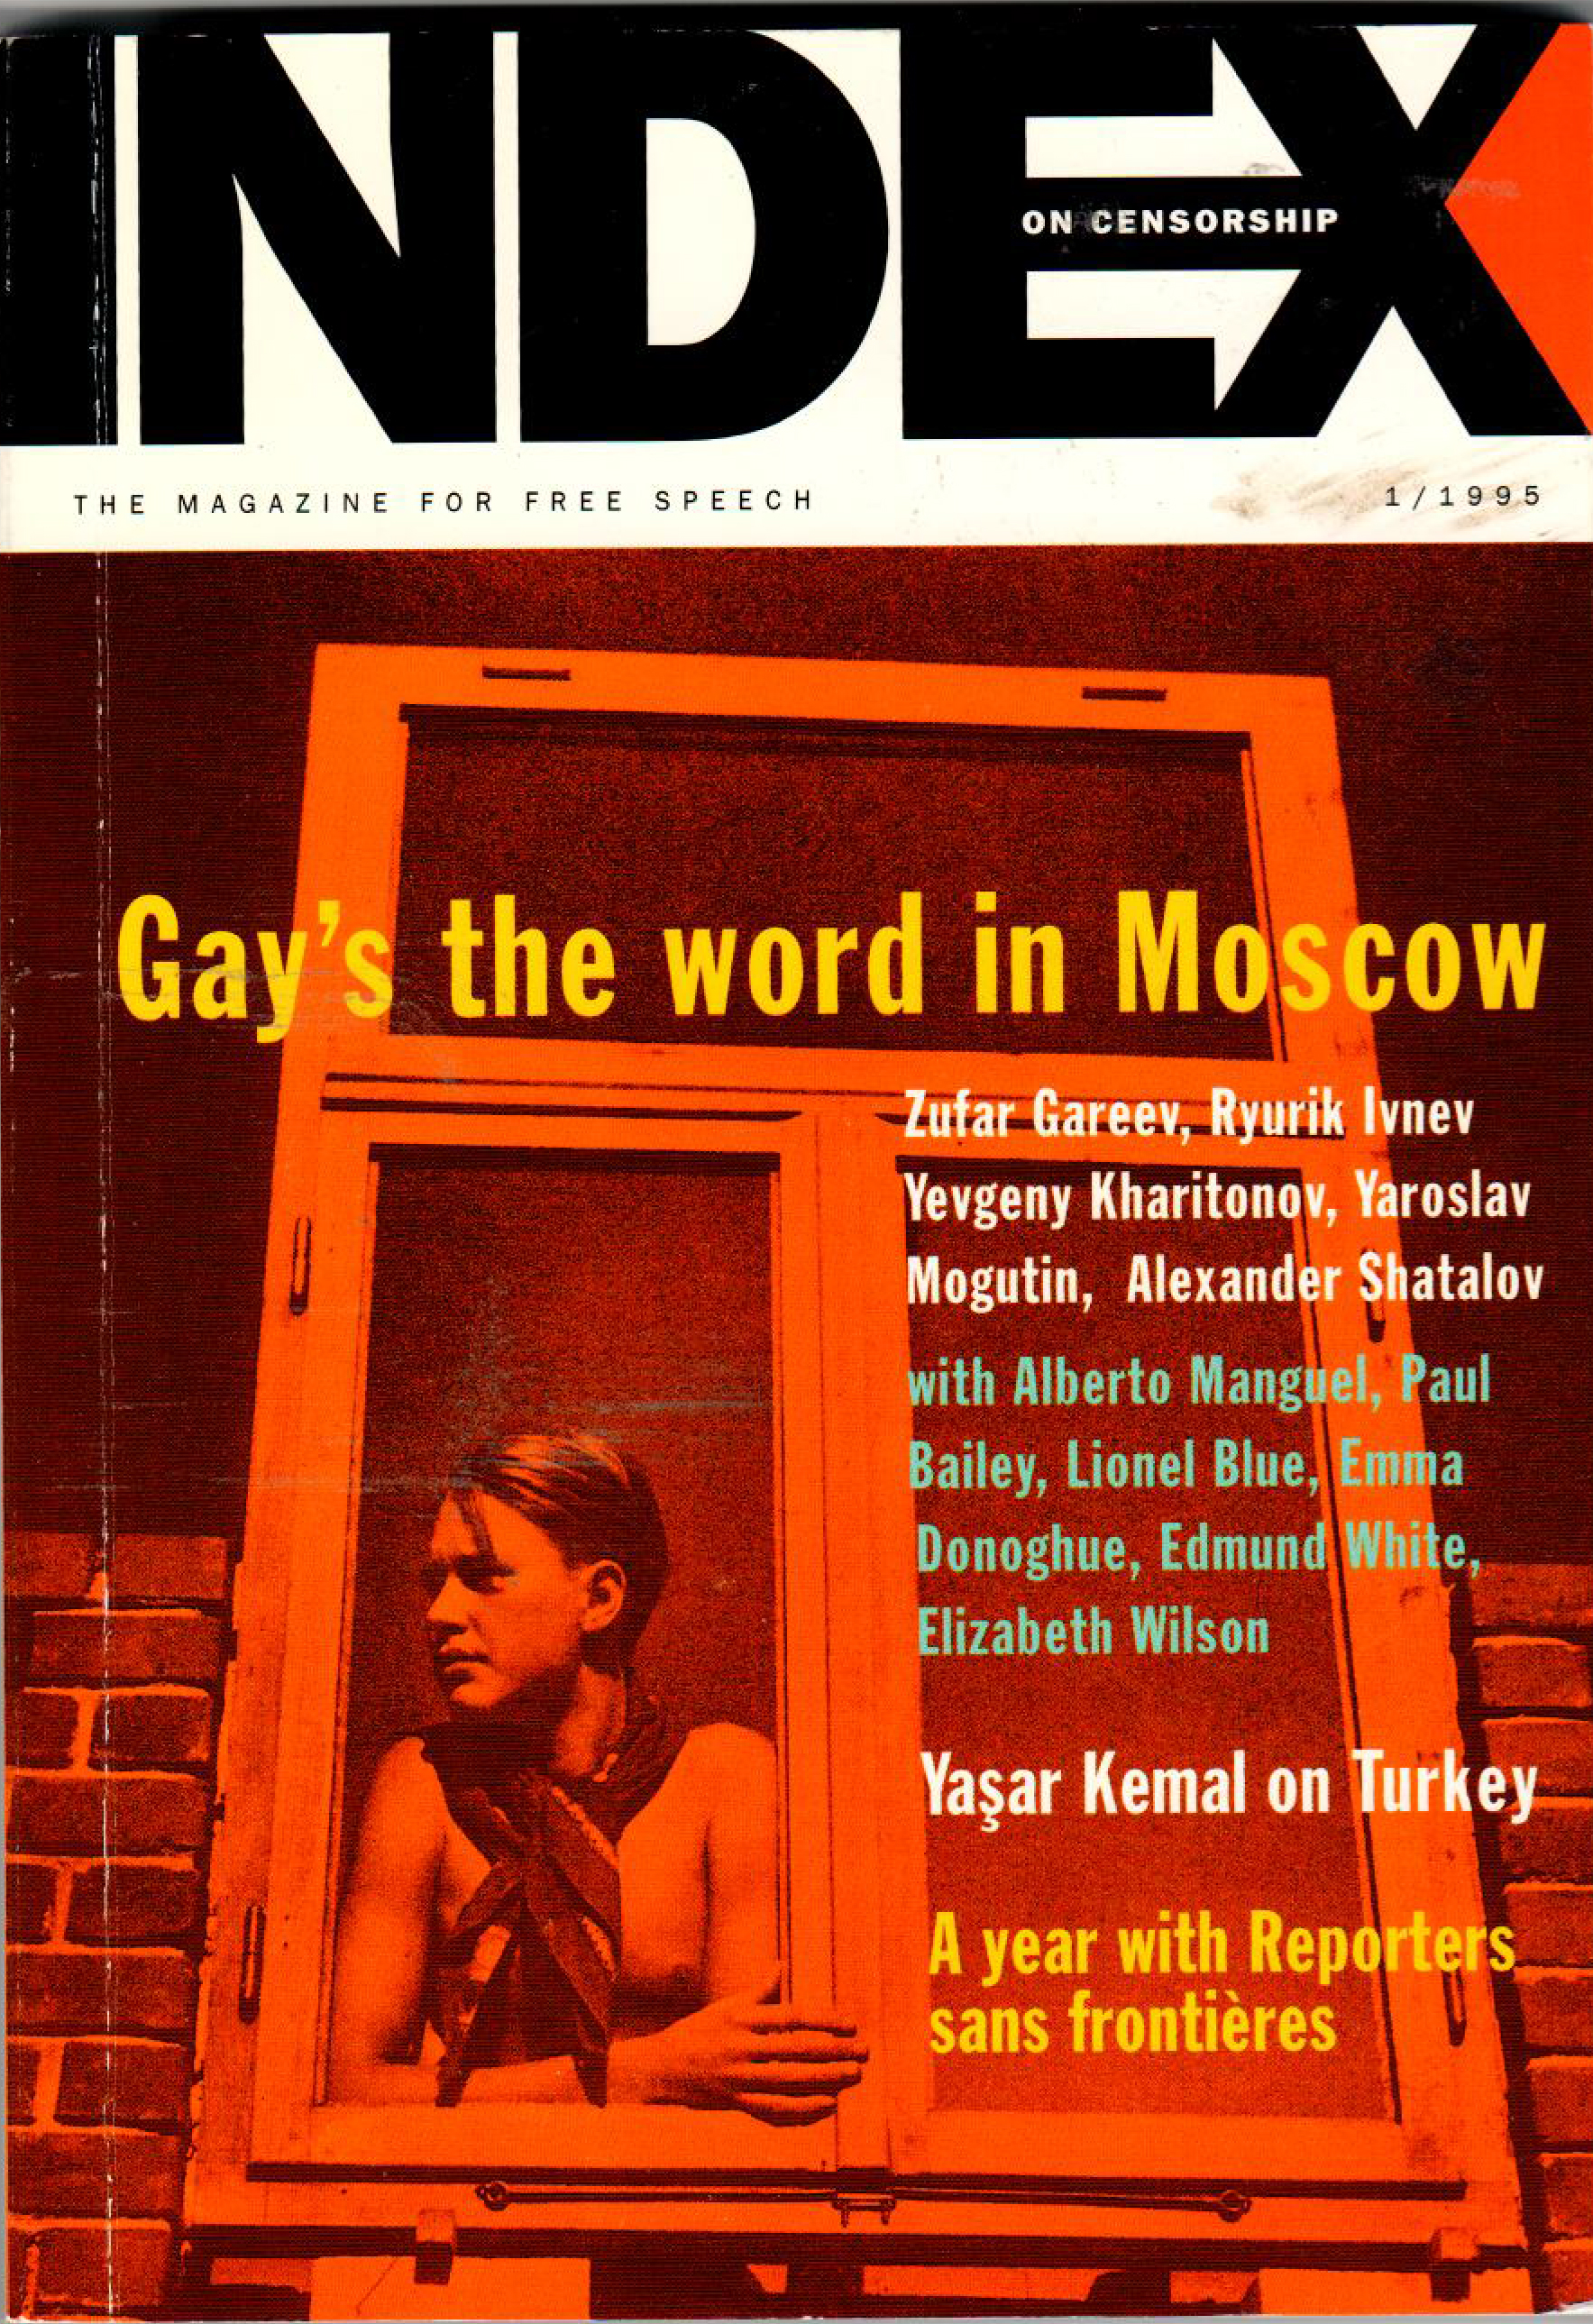 Gay's the word in Moscow, the January 1995 issue of Index on Censorship magazine.